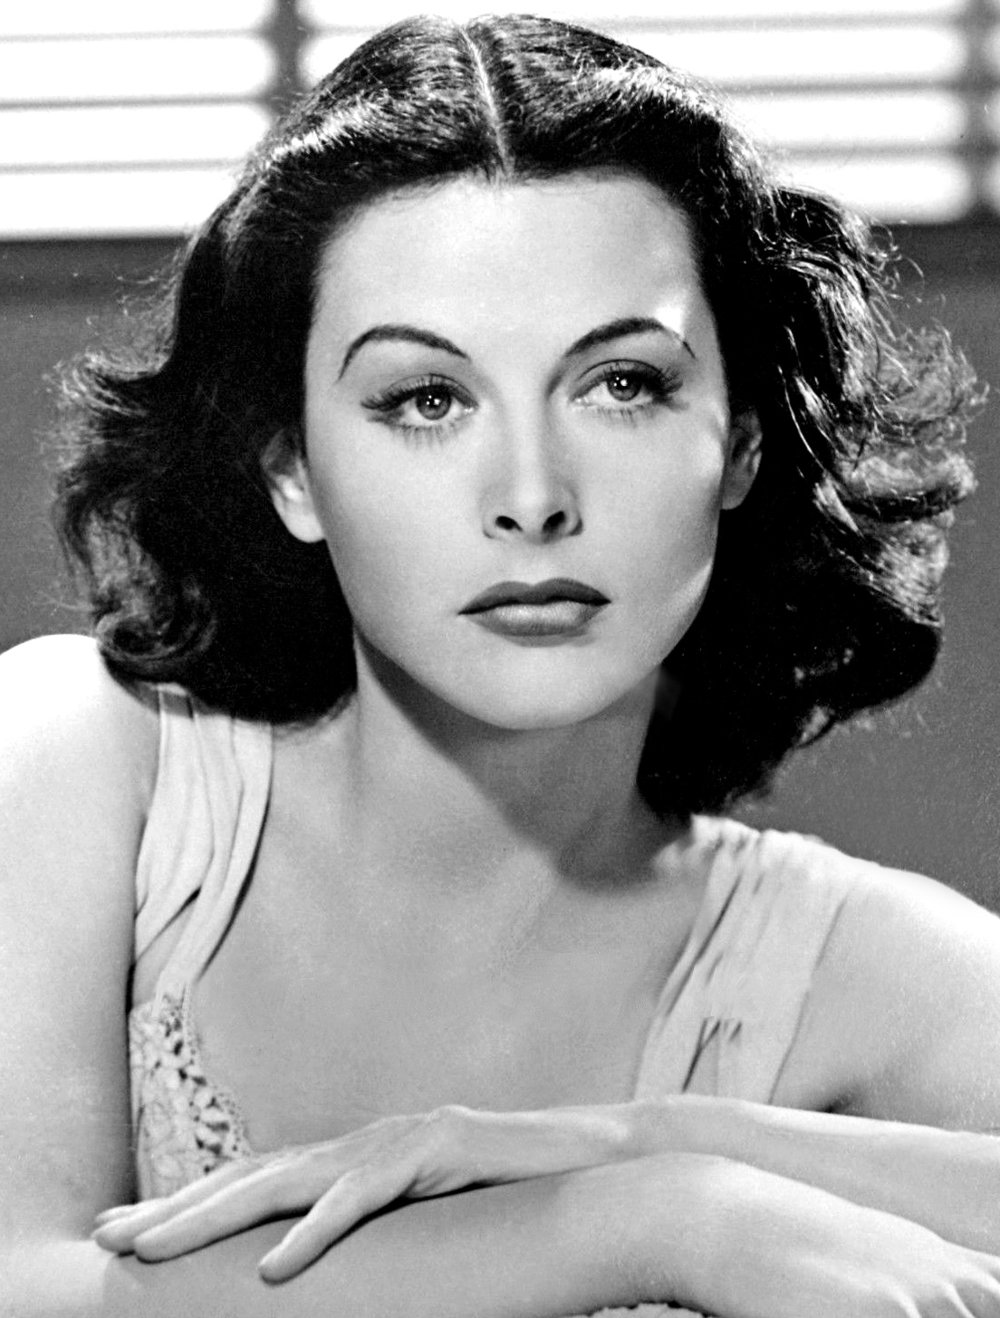 Hedy Lamarr in a publicity photo - 1940